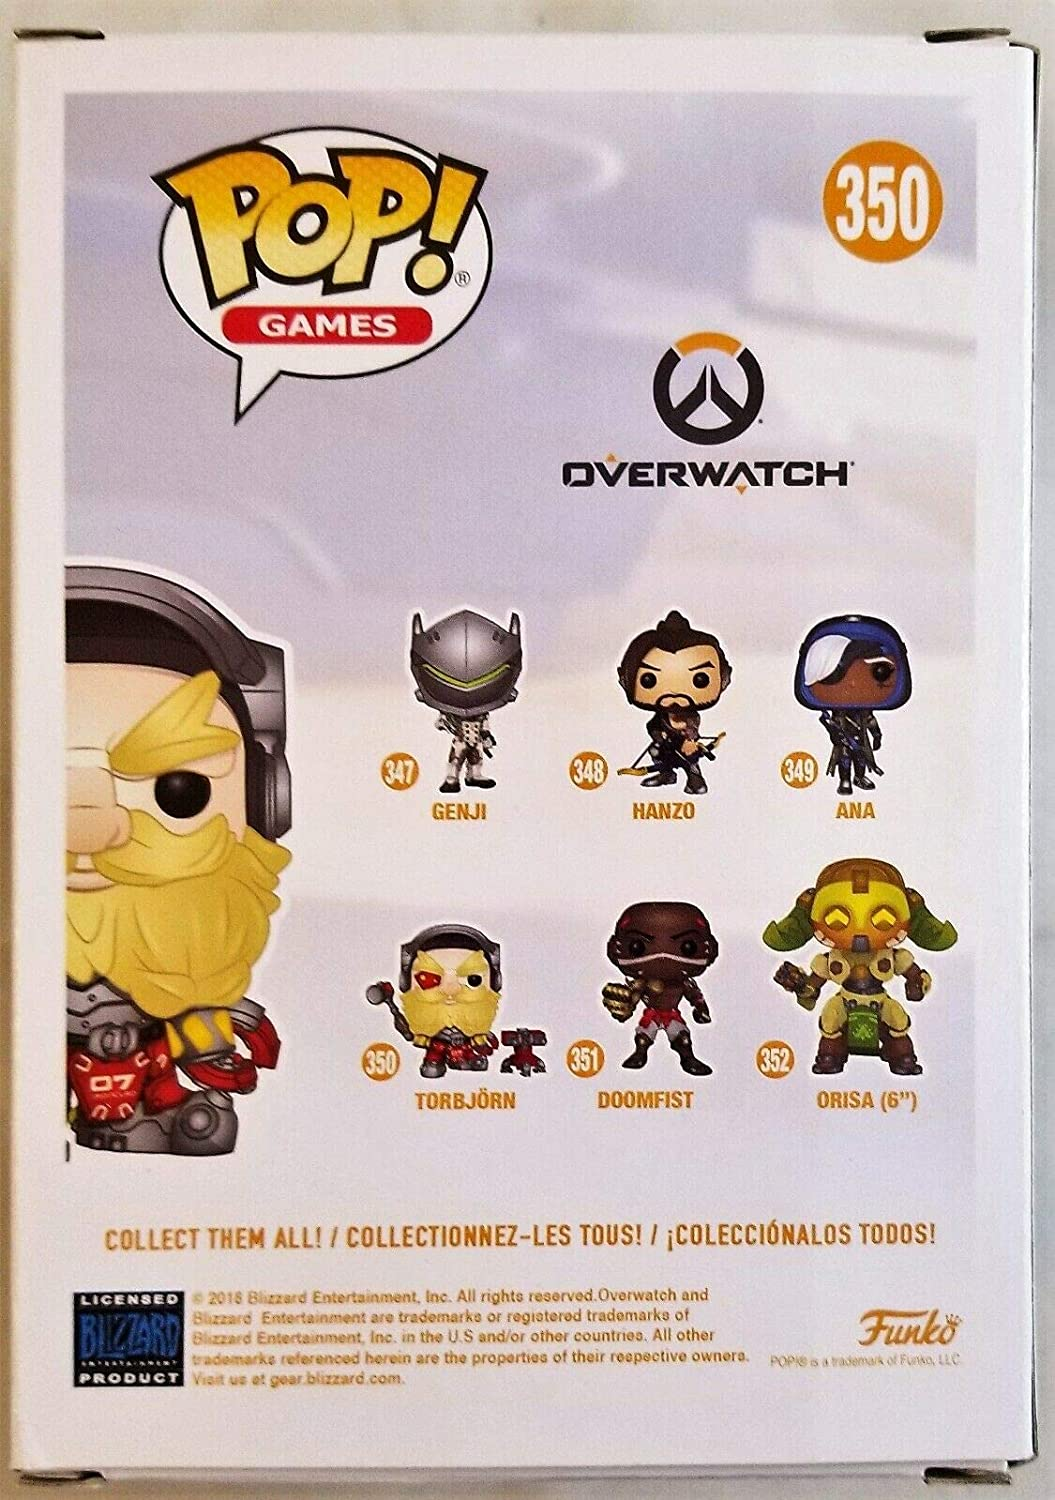 Keith Silverstein Autographed Signed Torbjorn Funko Pop 350 Overwatch Beckett Coa 99 at Amazons Sports Collectibles Store